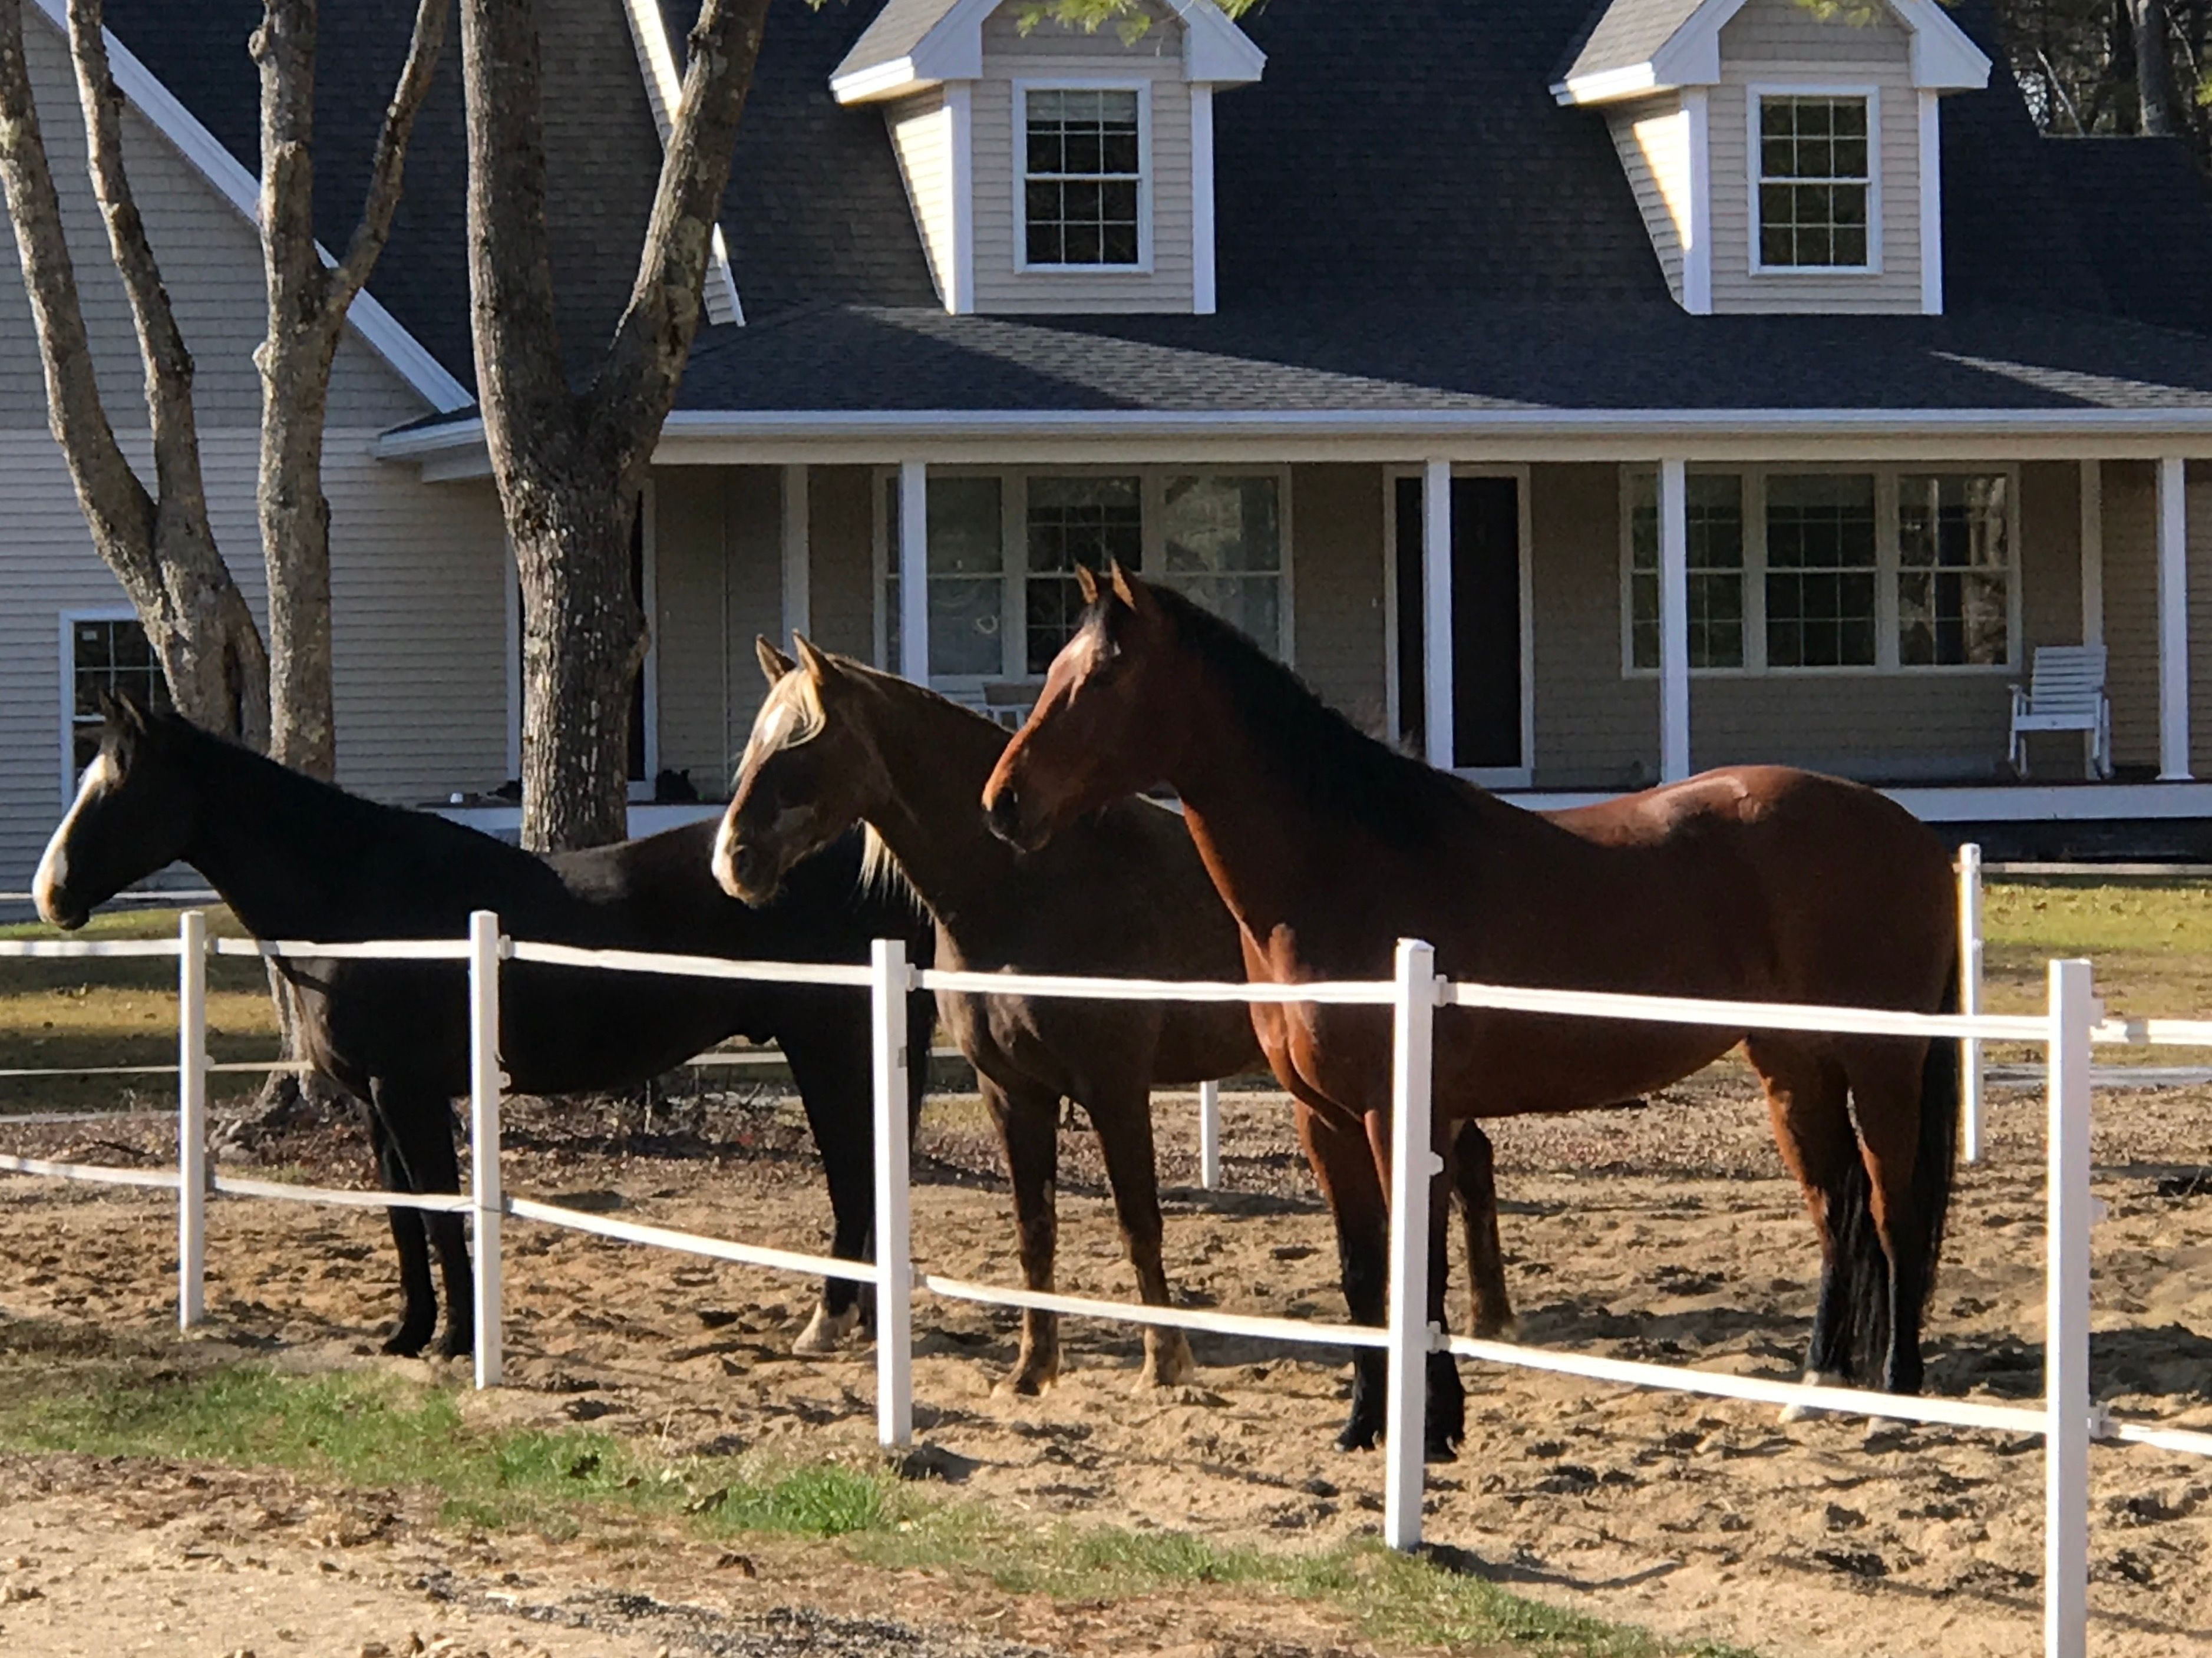 Meet and greet our horses monthly 24 oct 2018 meet and greet our horses monthly m4hsunfo